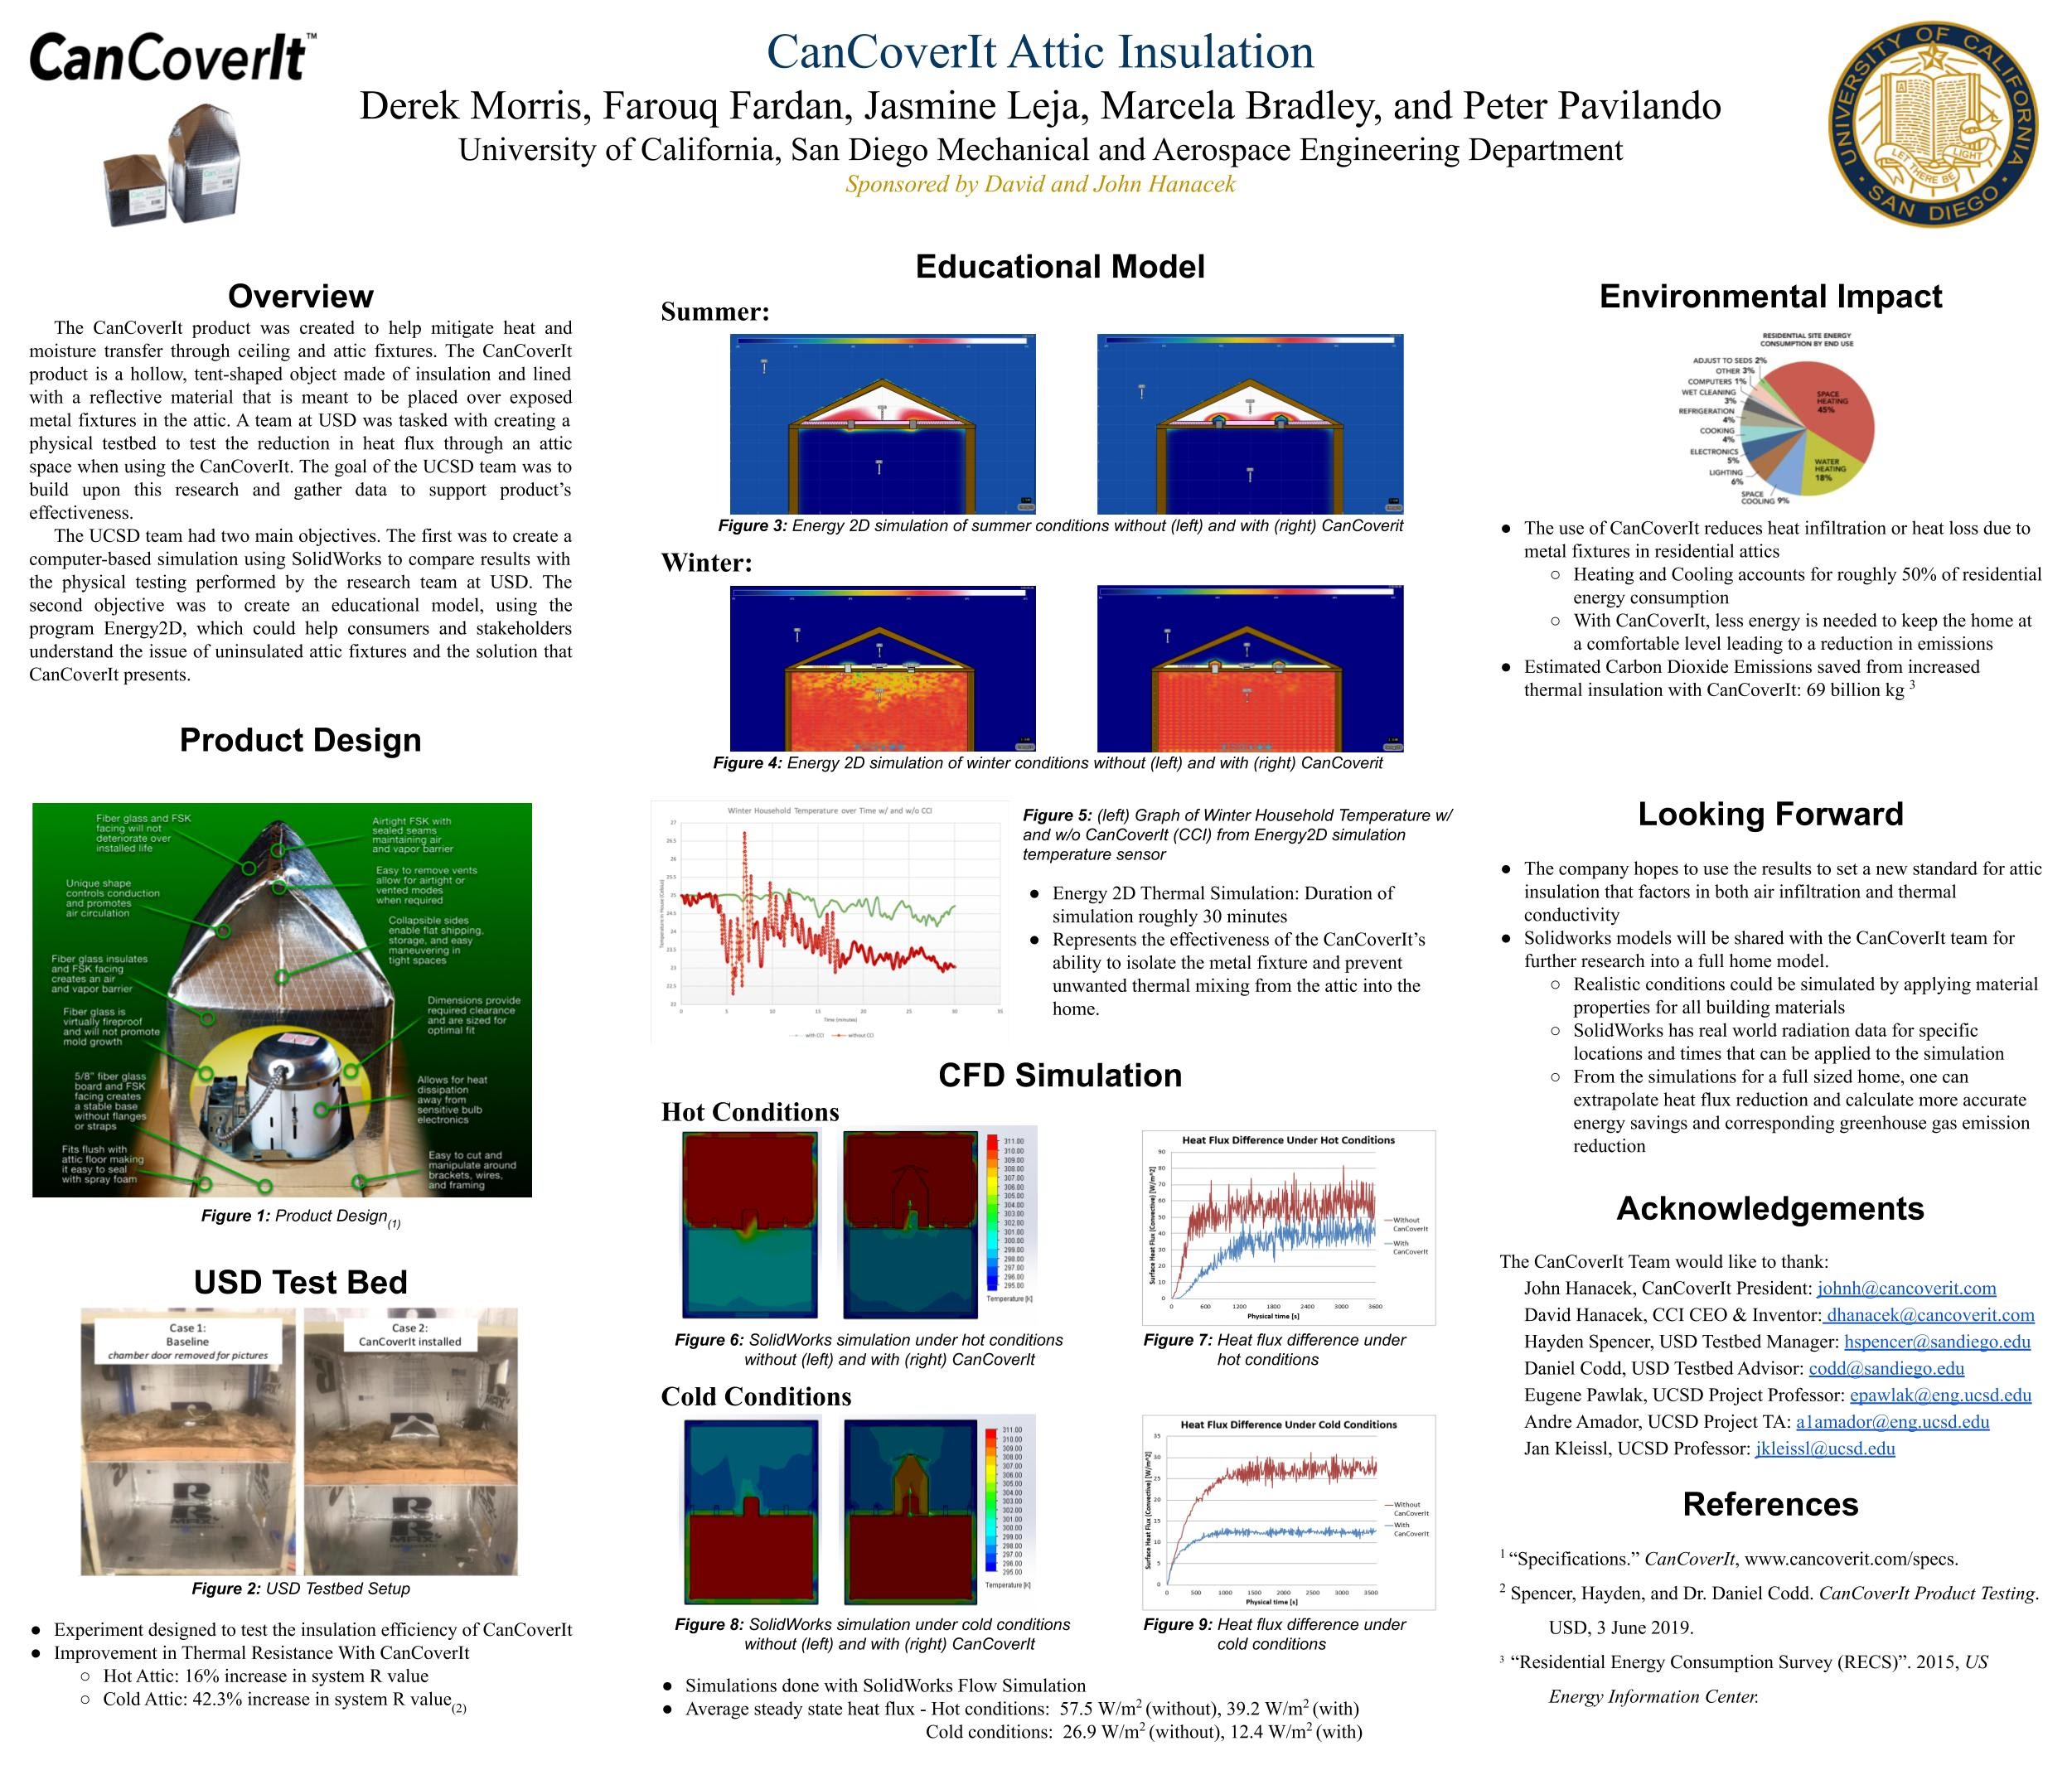 UCSD Student Poster